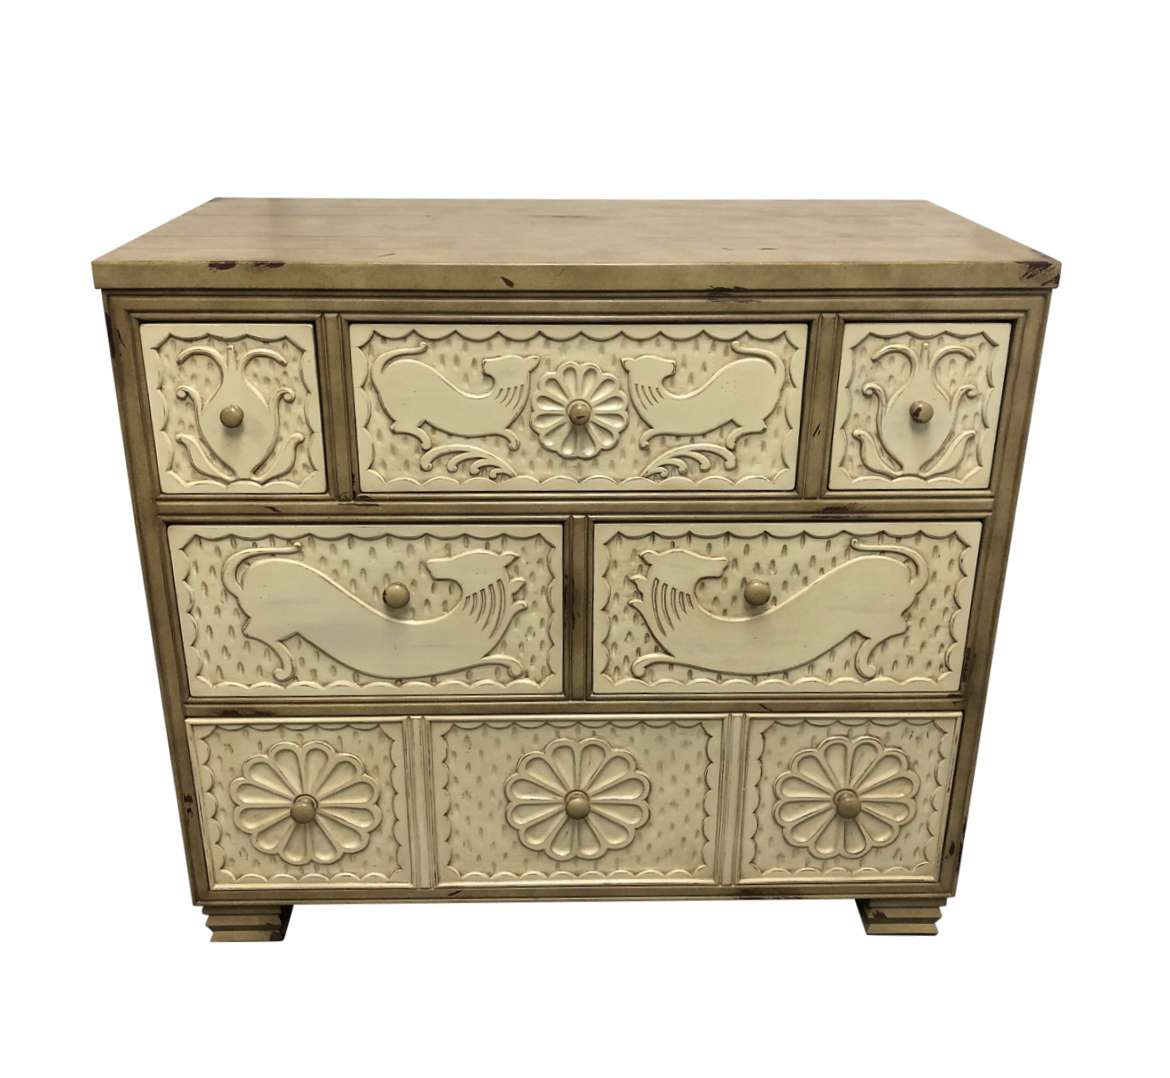 New Hickory Chair Furniture Company Carved Chest Original Price